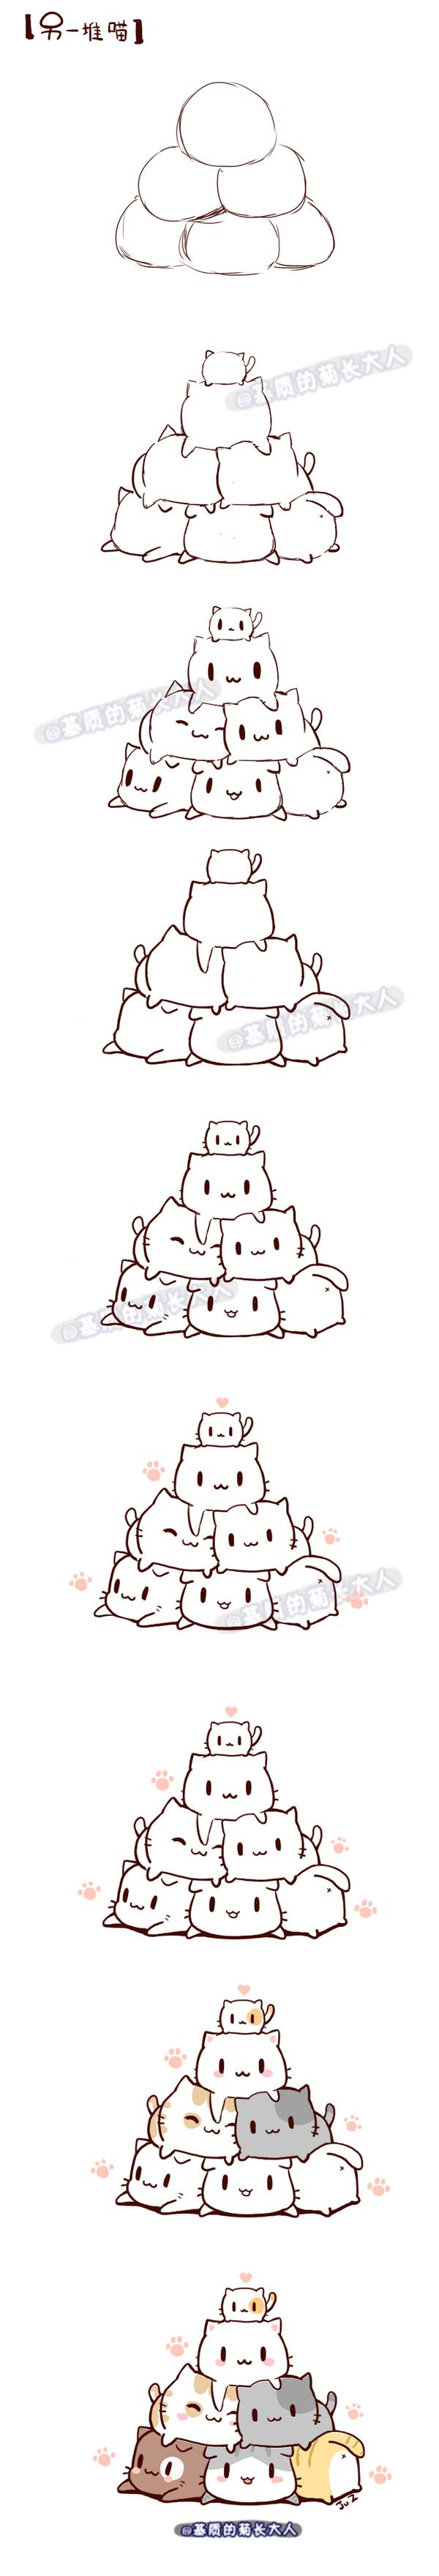 I want a cat or many cats animalus pinterest drawings